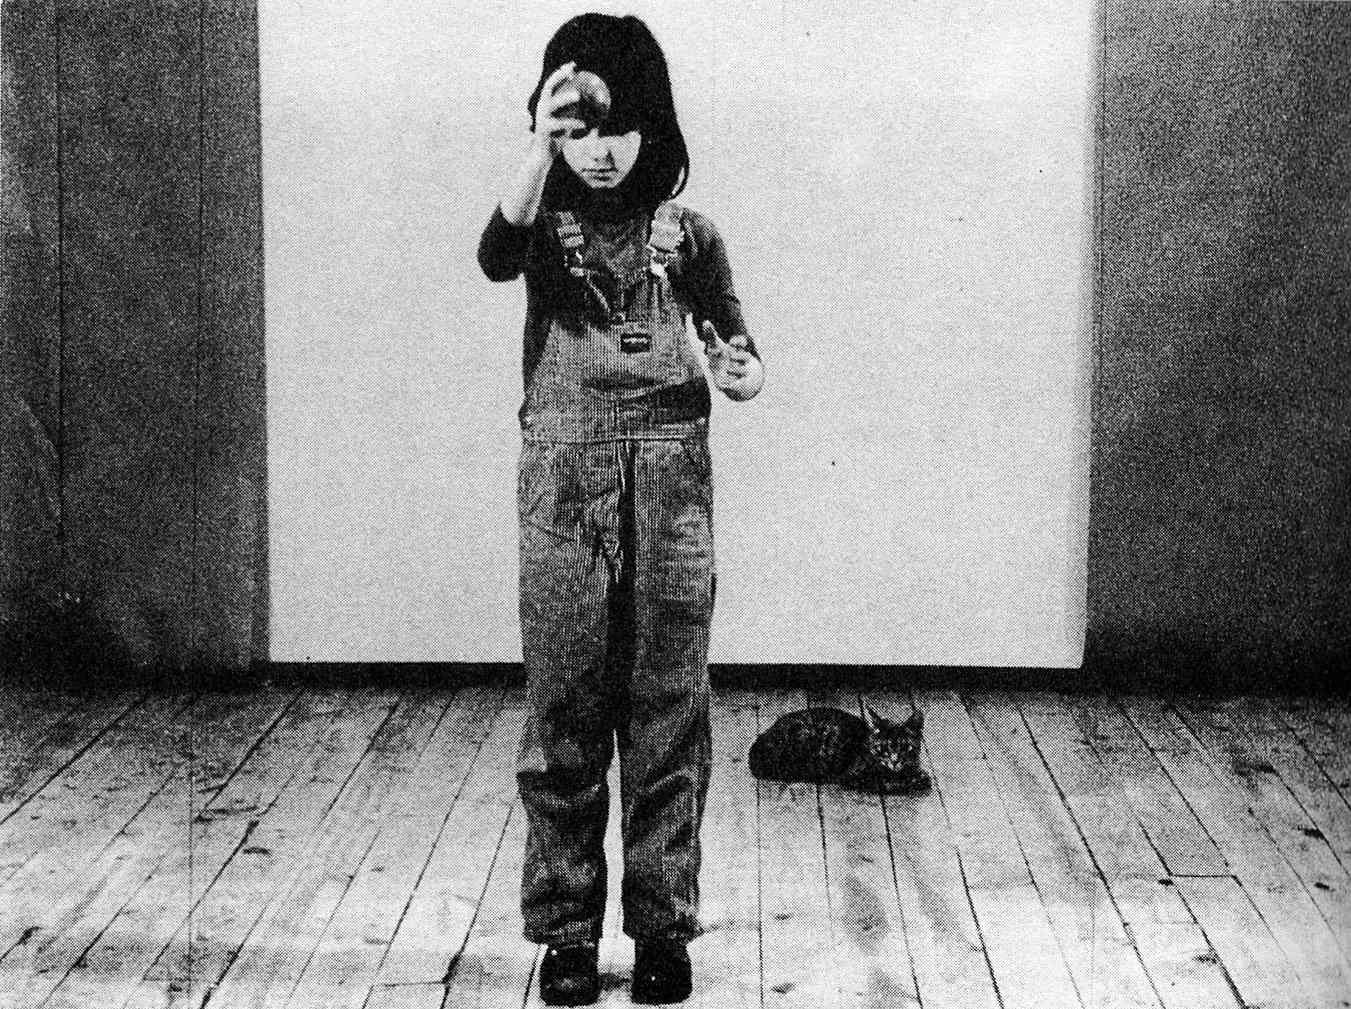 Yvonne Rainer. Lives of Performers. 1972